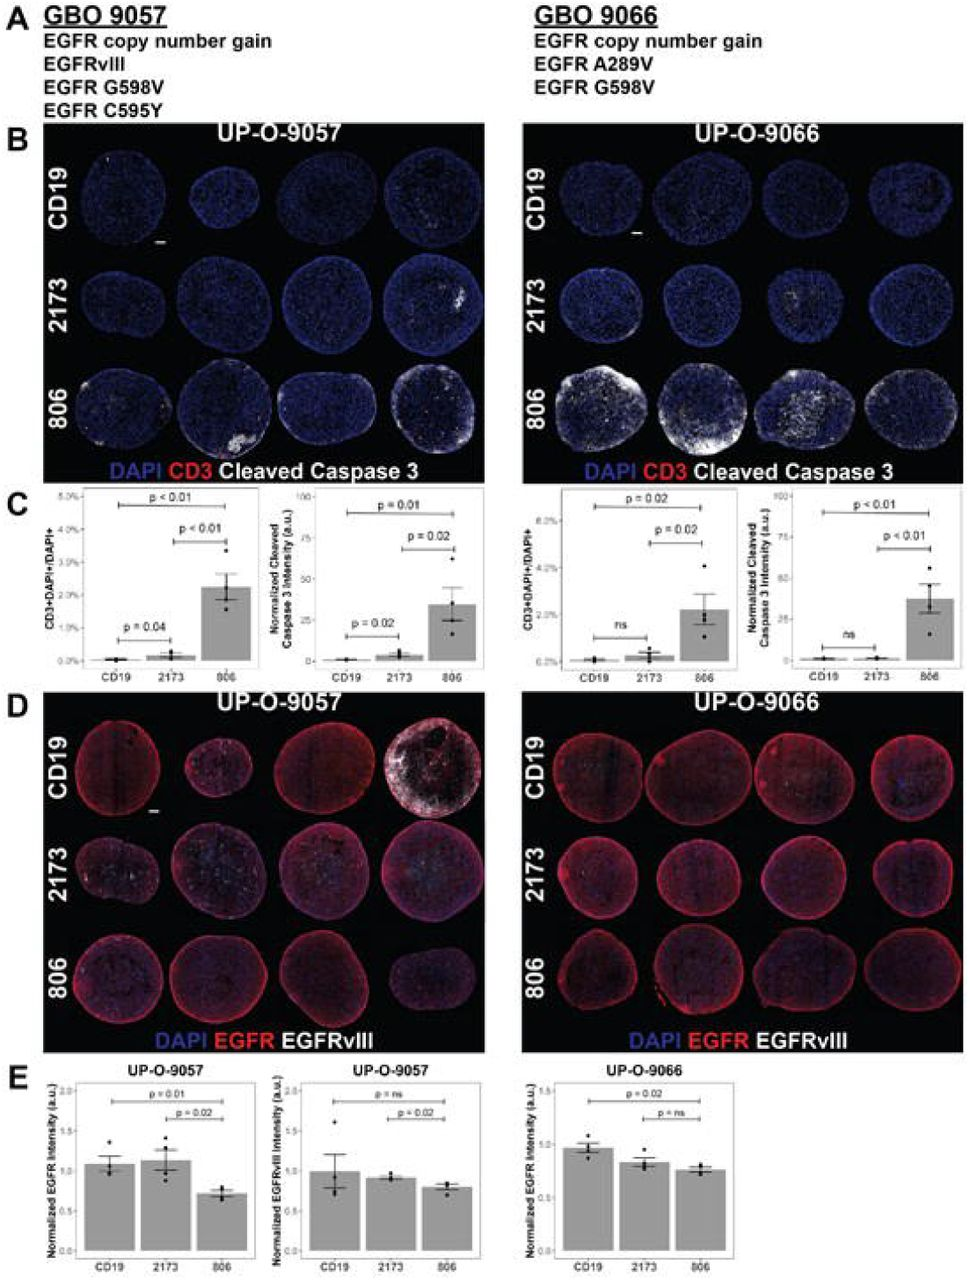 806 CAR T activity in heterogenous GBOs highlights cross-reactivity of 806 binder against oncogenic EGFRs. CAR T co-culture with GBOs was used to demonstrate anti-EGFR activity. (A) EGFR alterations identified in each GBO line. (B) Immunofluorescence images of CAR T cells engrafted GBOs, for 4 organoids per condition, 9057 (left) and 9066 (right). Blue=DAPI; Red=CD3 + ; White=Cleaved caspase 3 + (CC3 + ), scale bar = 100 µm. (C) Quantification of CD3 + cells (left) and CC3 + cells (right) showing anti-tumor activity from the 806 CAR T cells. (D) Immunofluorescence images of CAR T cell targets in GBOs, for 9057 (left) and 9066 (right). Blue=DAPI; Red=EGFR + ; White=EGFRvIII + , scale bar = 100 µm. (E) Quantification of EGFR + (left) and EGFRvIII + signals (right) showing anti-tumor activity from the 806 CAR T cells. Error bars are ± standard error.